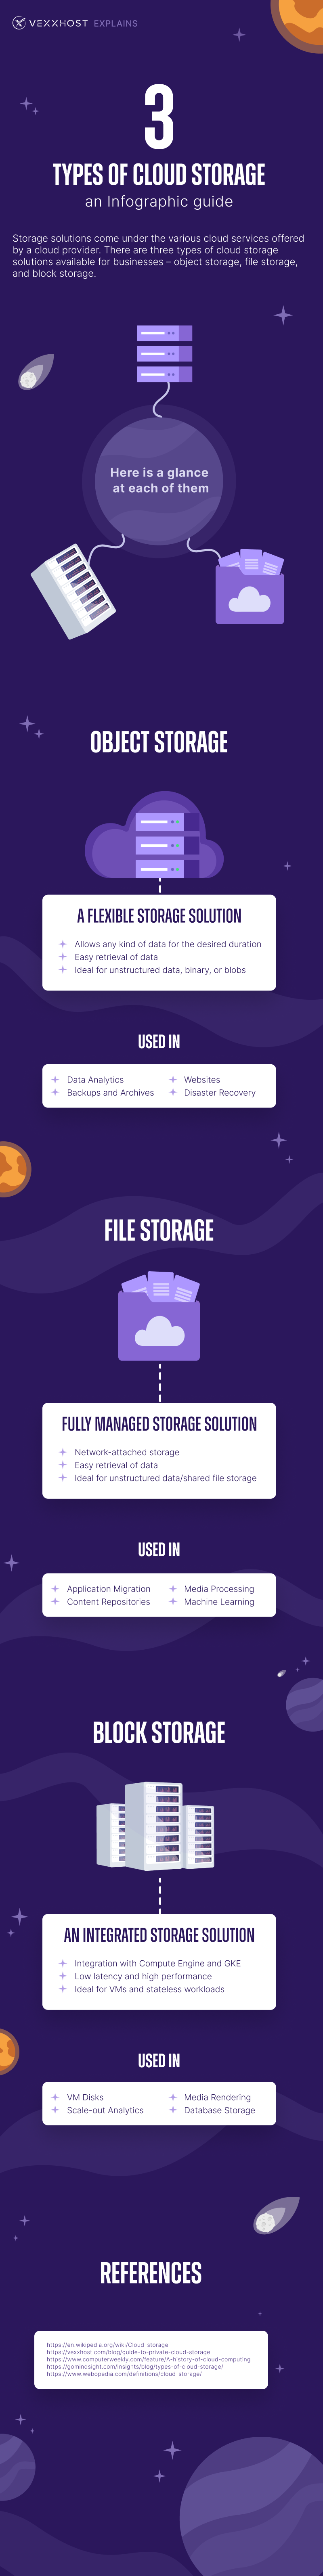 3 Types of Cloud Storage - An Infographic Guide